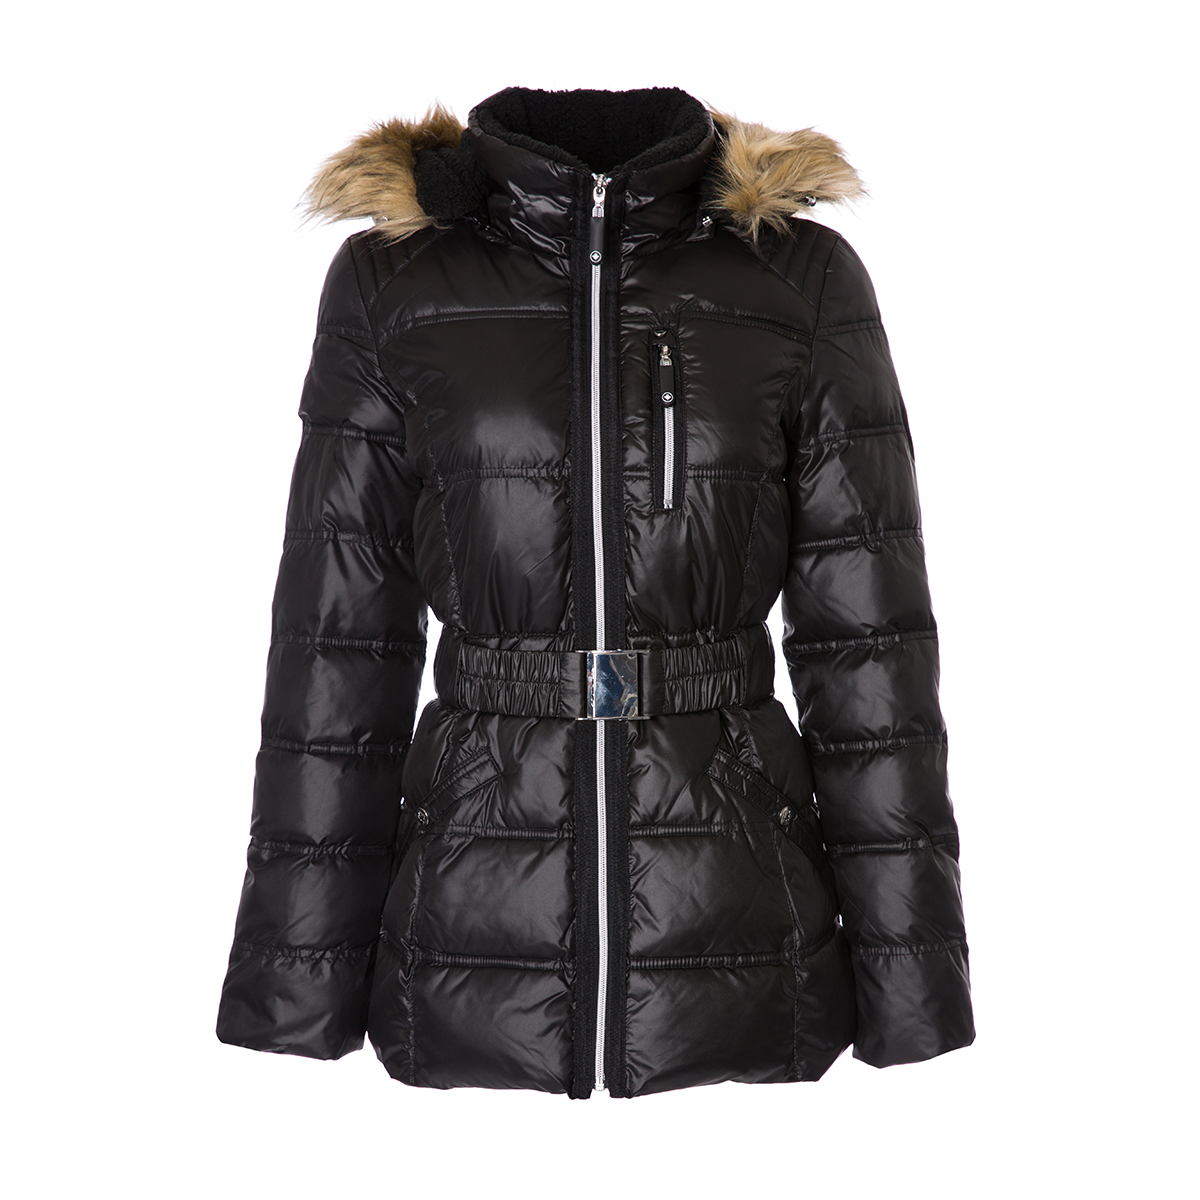 HFX Women's Hooded Puffer Jacket